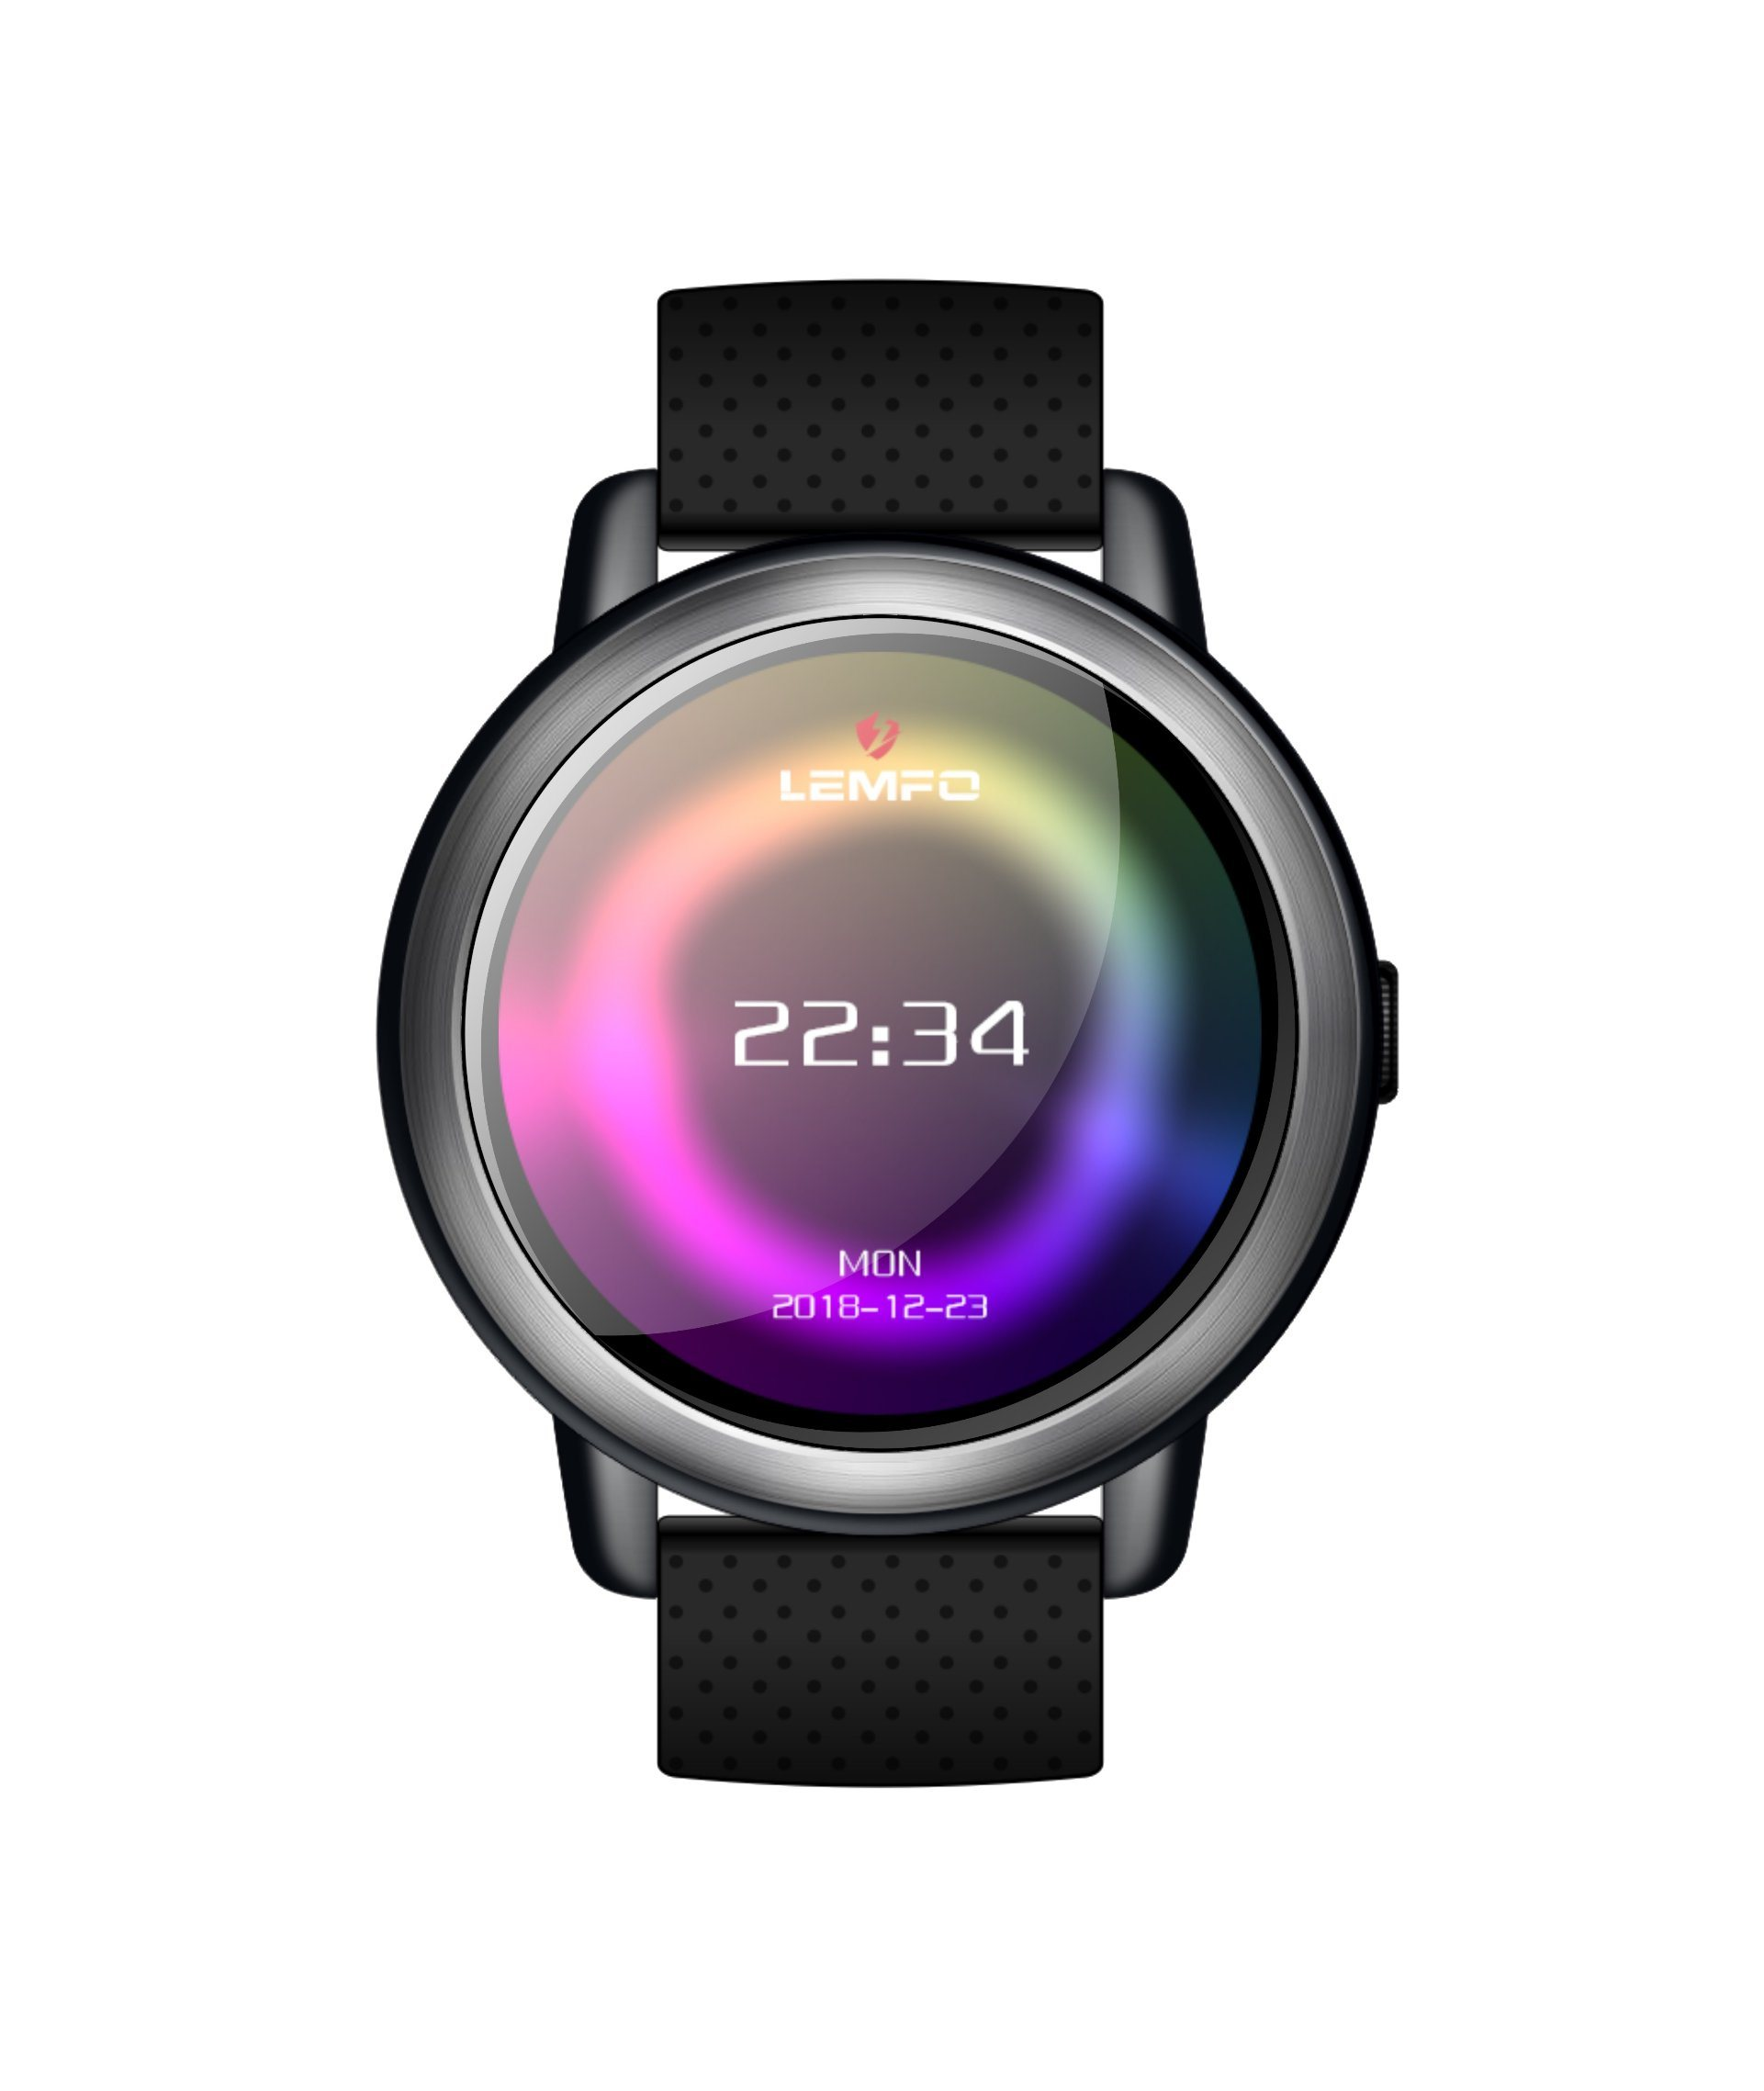 90882ab5d7f China Lemfo Lem8 4G Wearable Devices Android 7.1.1 2GB+16GB Support GPS    WiFi   SIM Card   Heart Rate Monitor 2MP Camera Smartwatch - China Smart  Watch